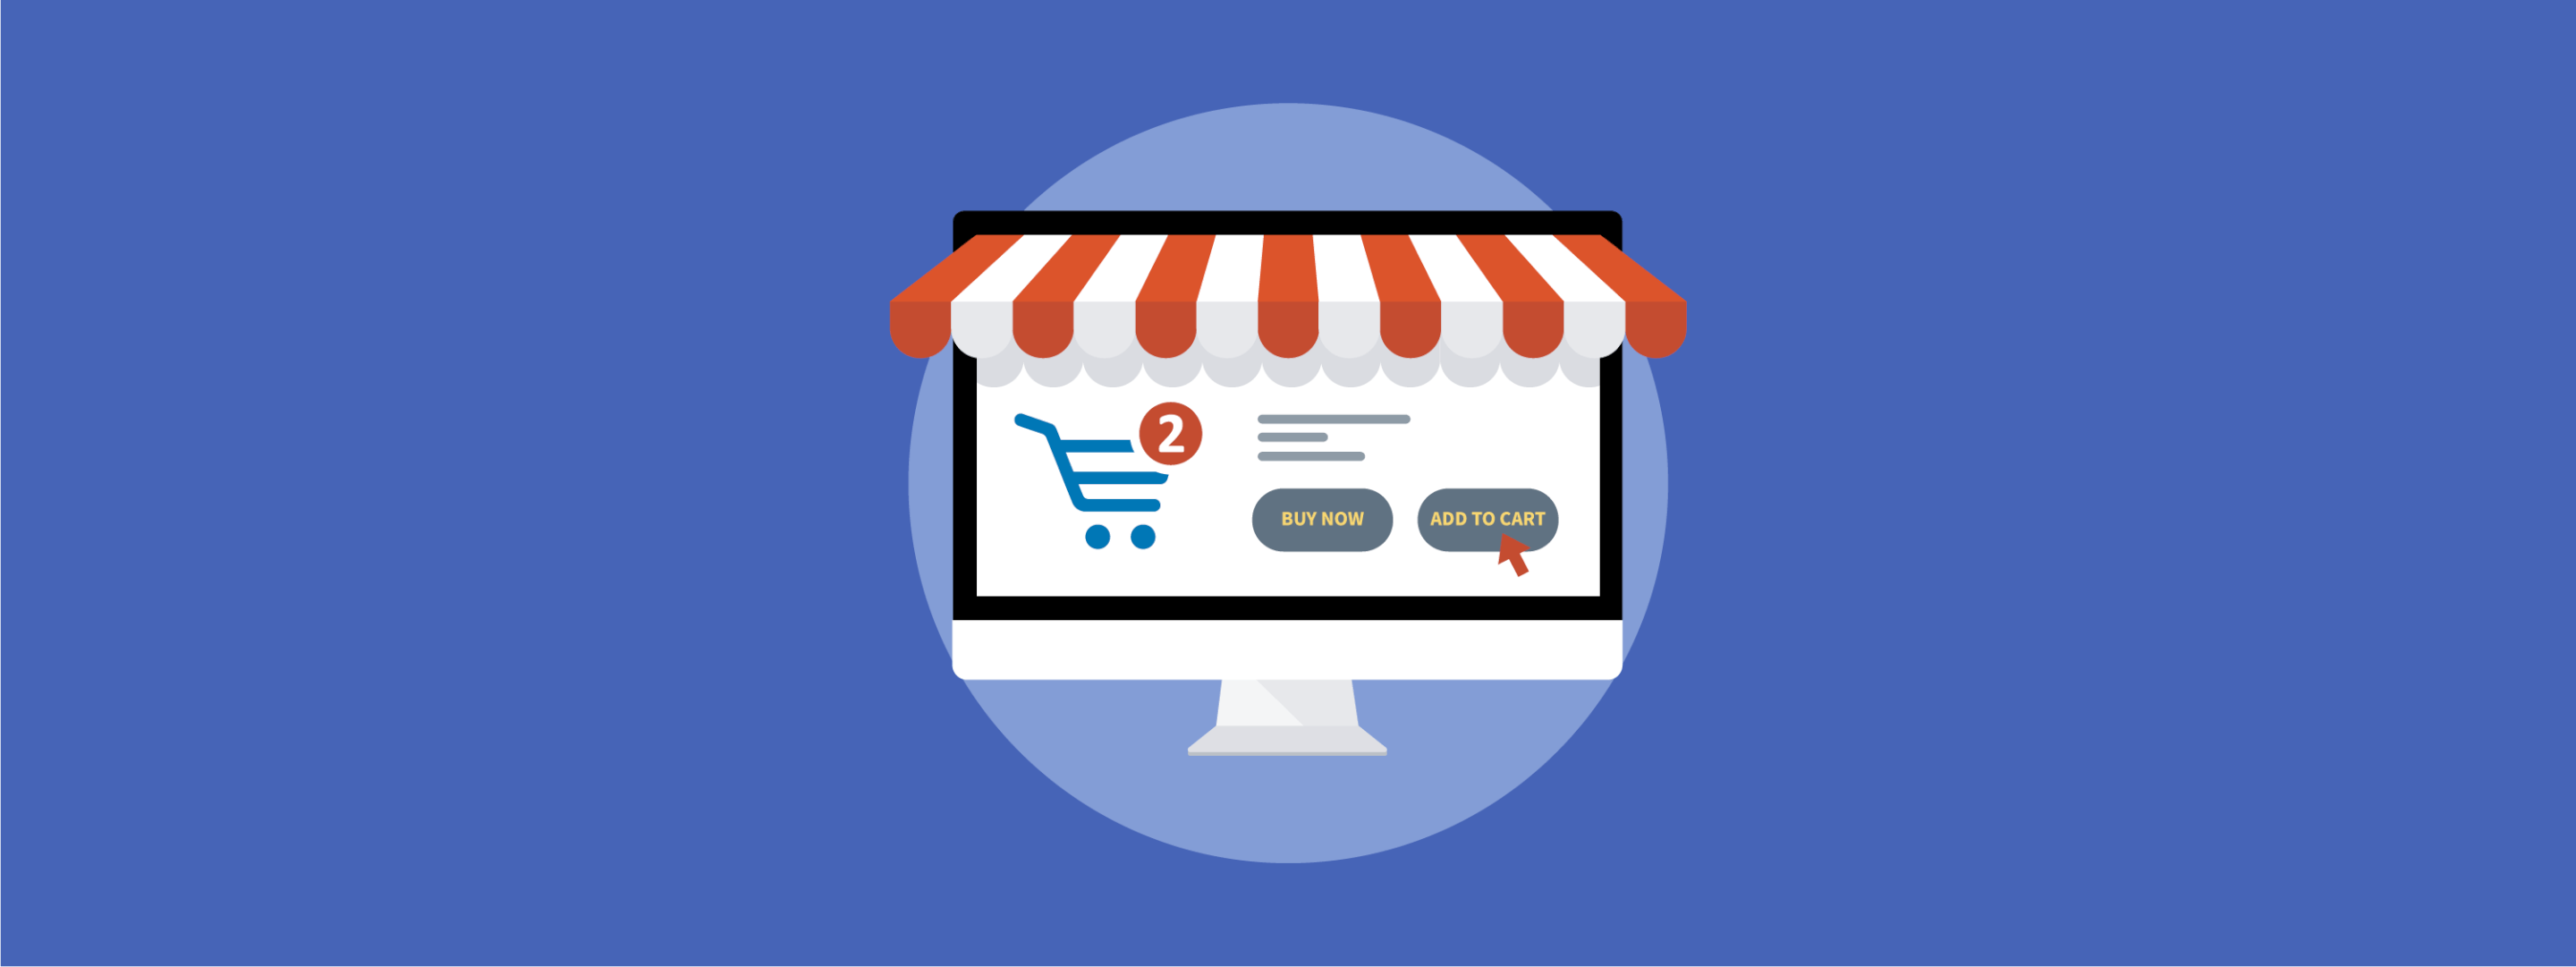 3 Reasons Why Customers Abandon Shopping Carts Online